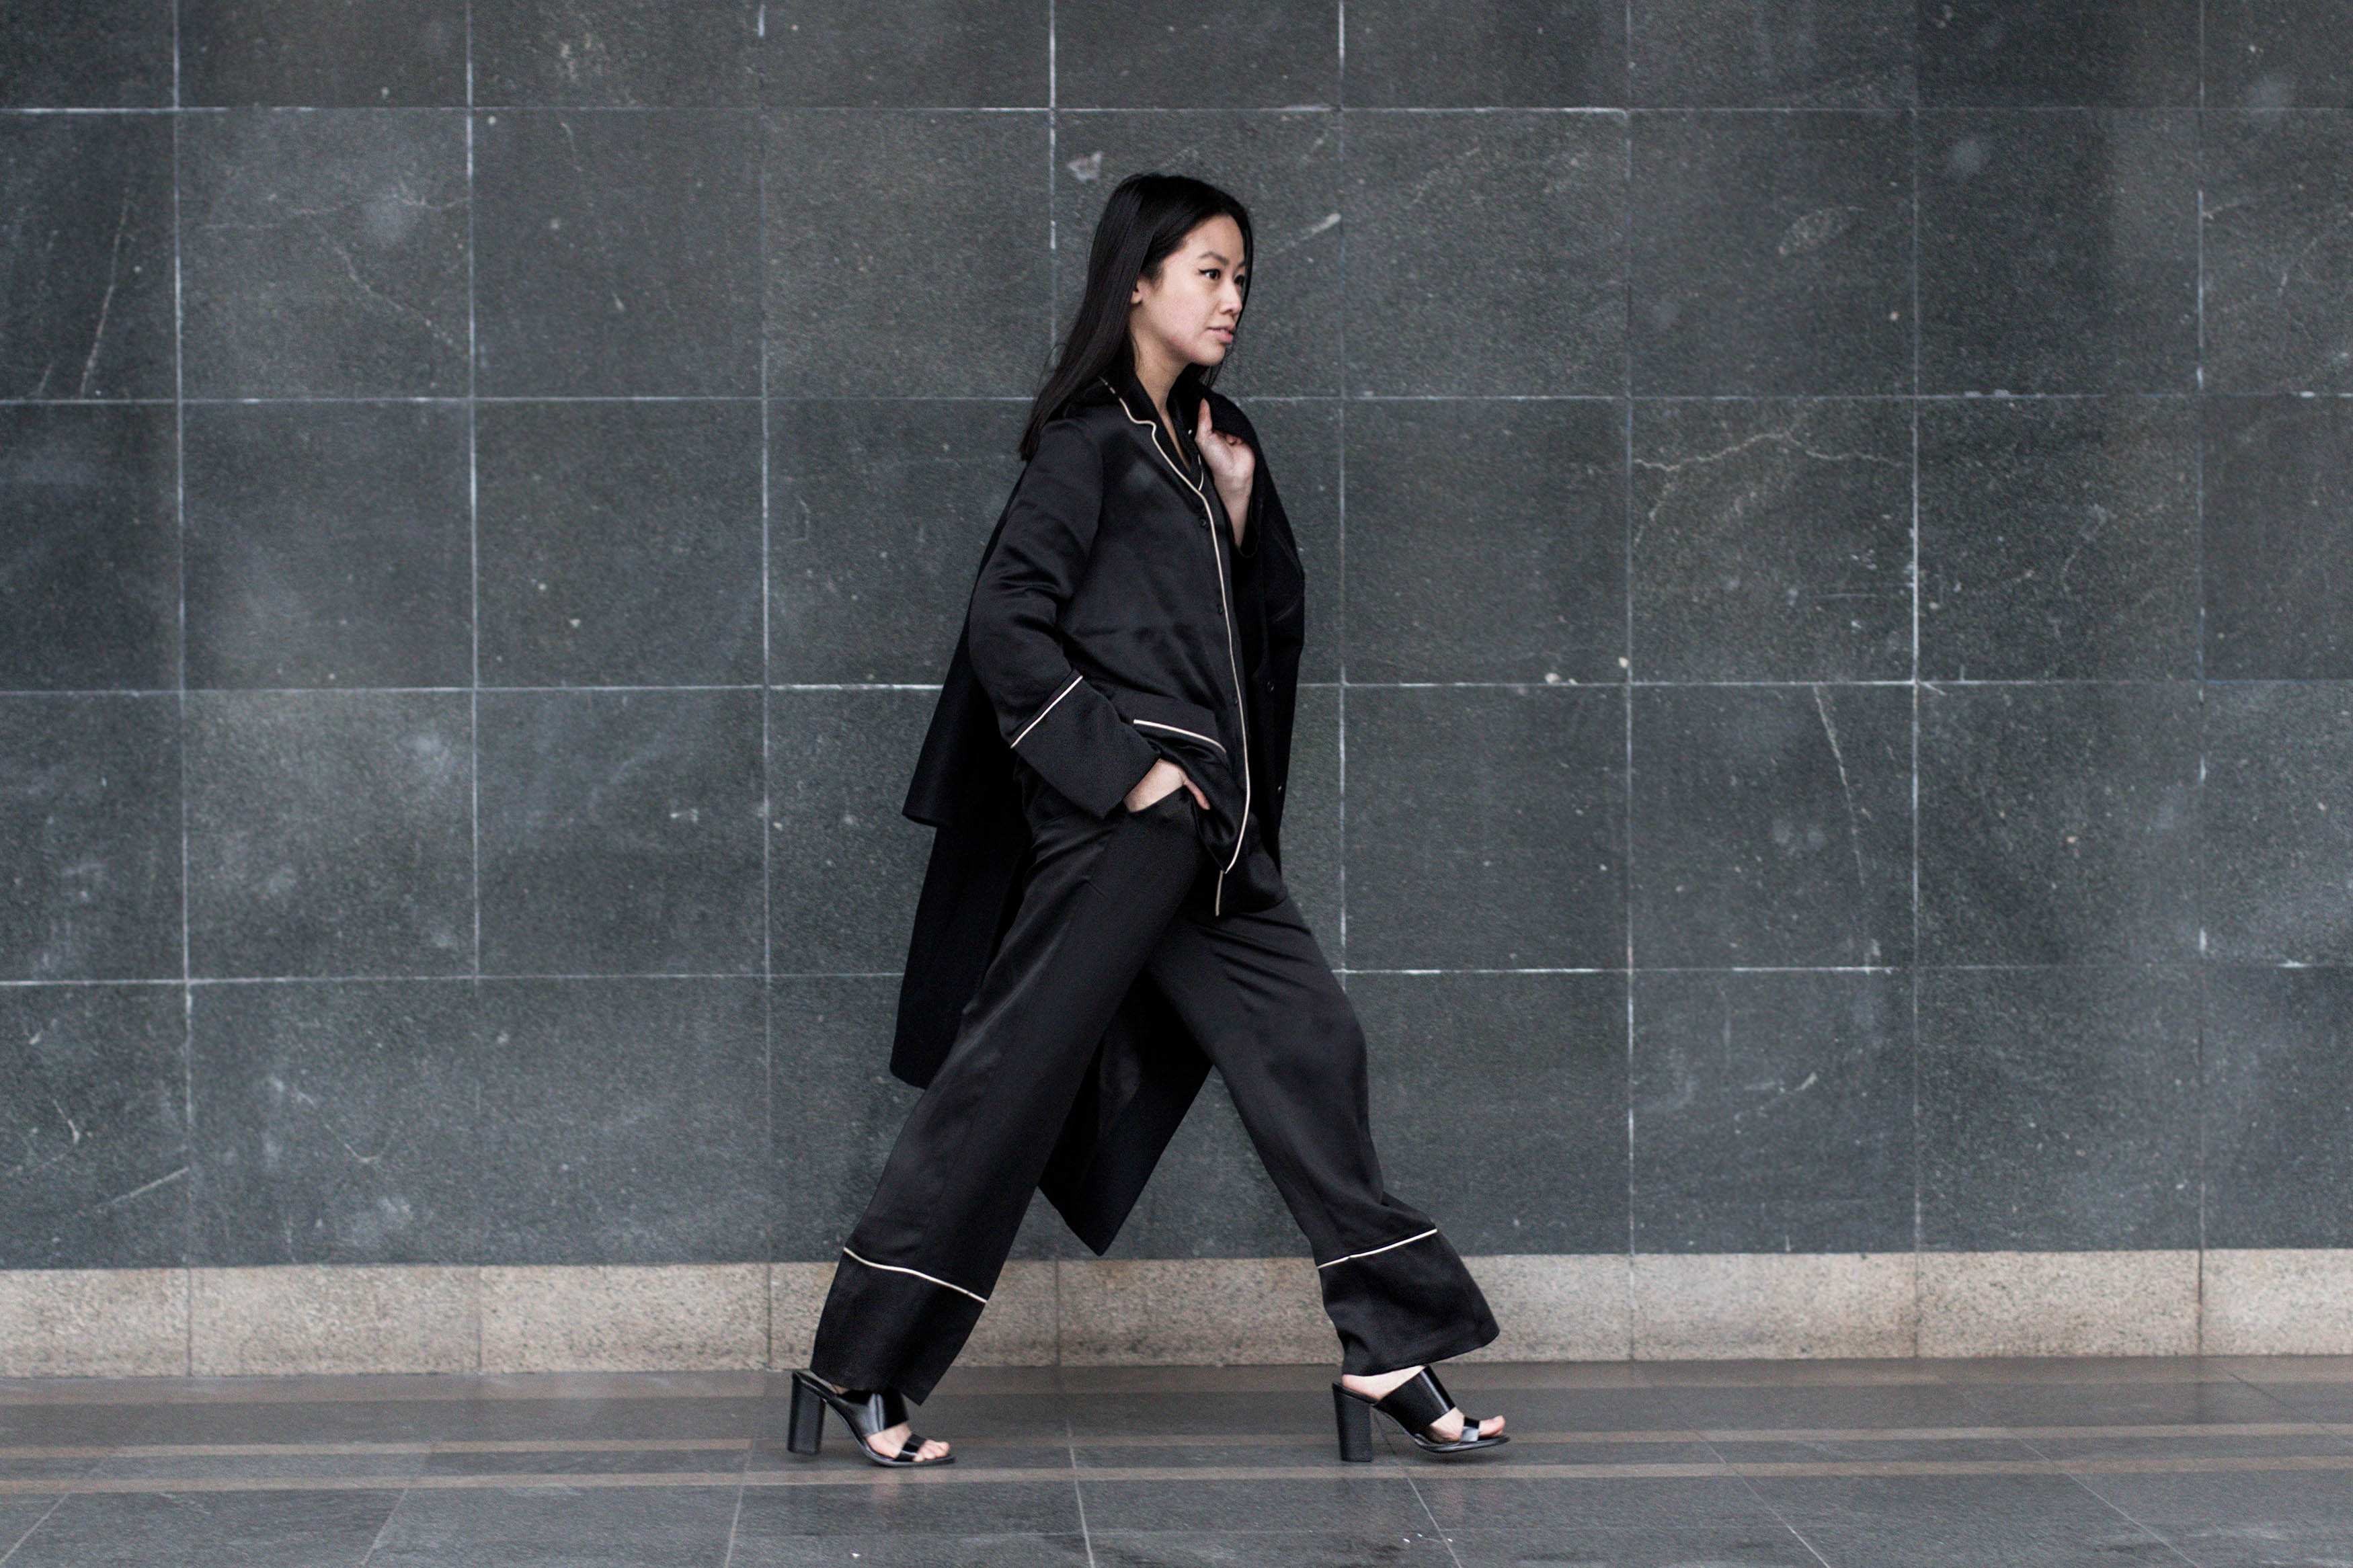 IHEARTALICE.DE – German Fashion & Lifestyle-Blog by Alice M. Huynh: All-Black-Everything Look with &OtherStories Pyjama-Look, Topshop High Heels, Maison Martin Margiela Wollcoat, Alexander Wang Pelican Sling Bag / A Christmas Look / What to wear for Christmas?